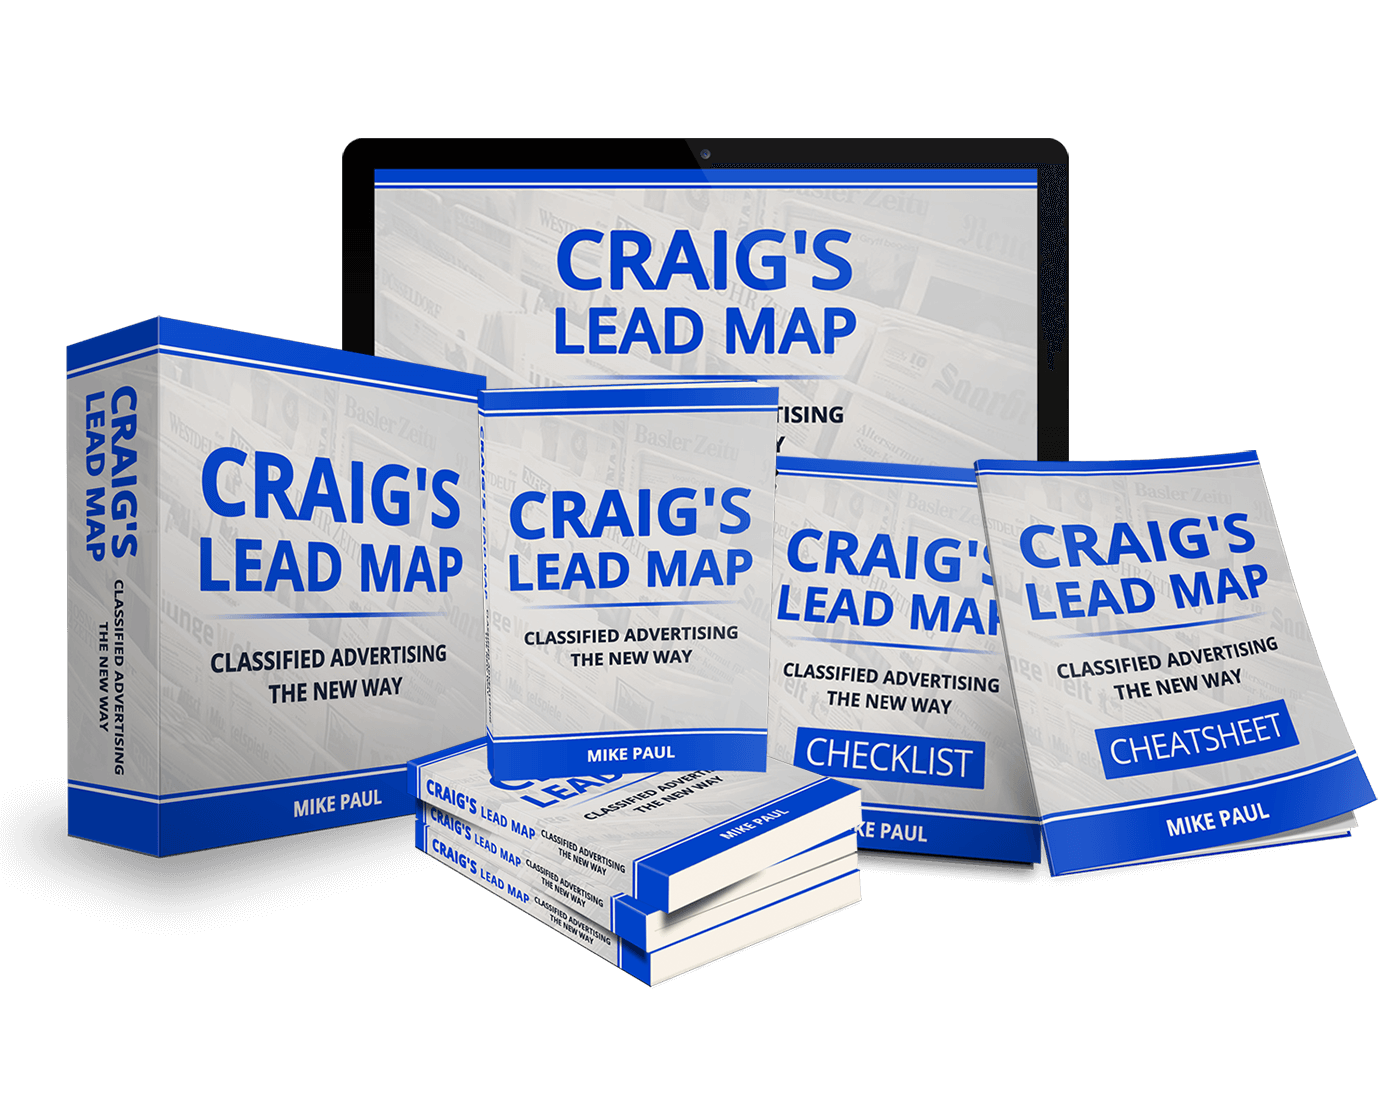 CRAIGS-LEAD-MAP-2020-Review